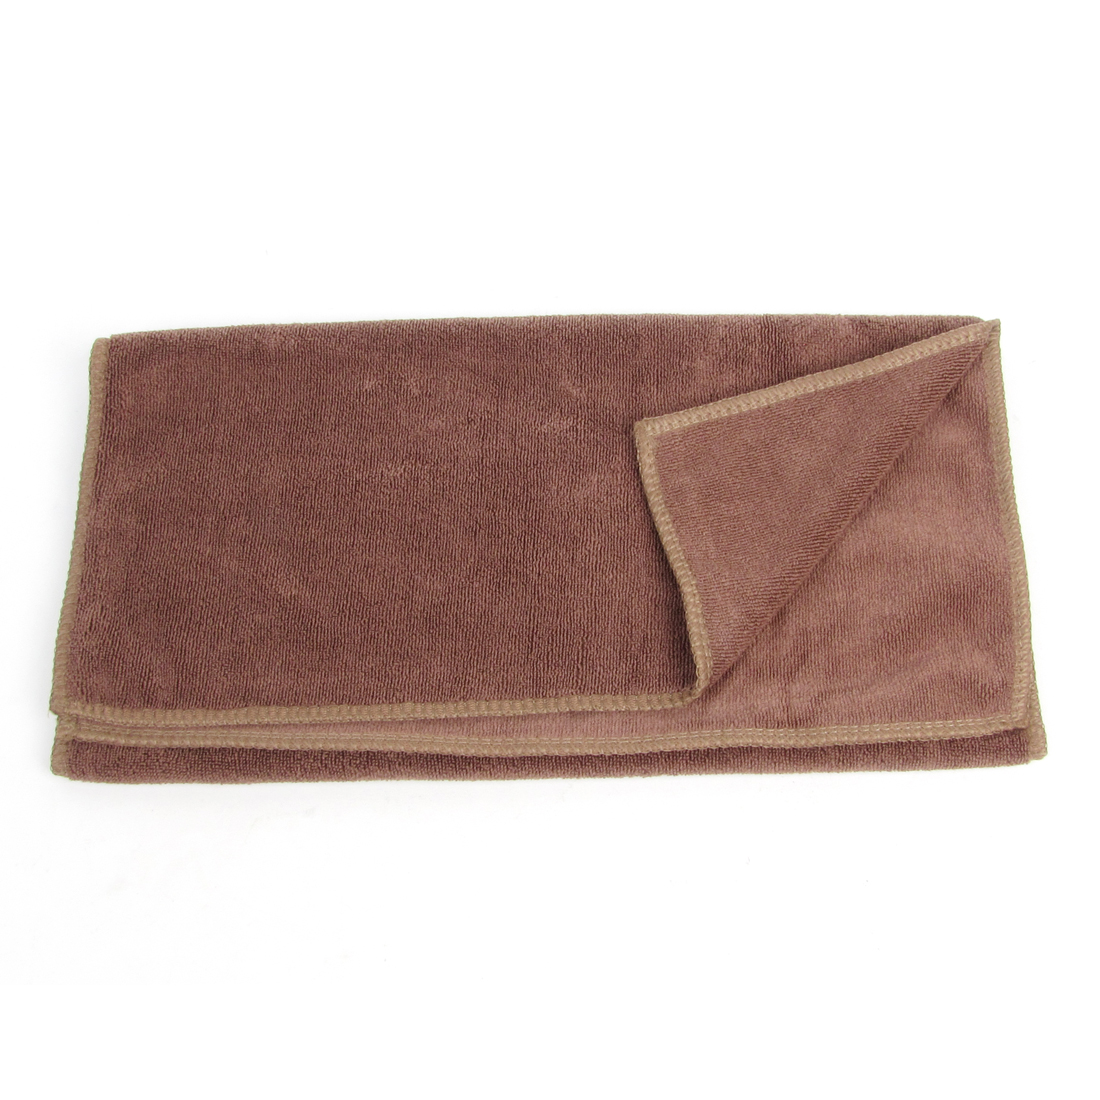 """Rectangle Brown 26"""" x 12.6"""" Microfiber Towel Car Cleaning Cloth - image 1 of 1"""